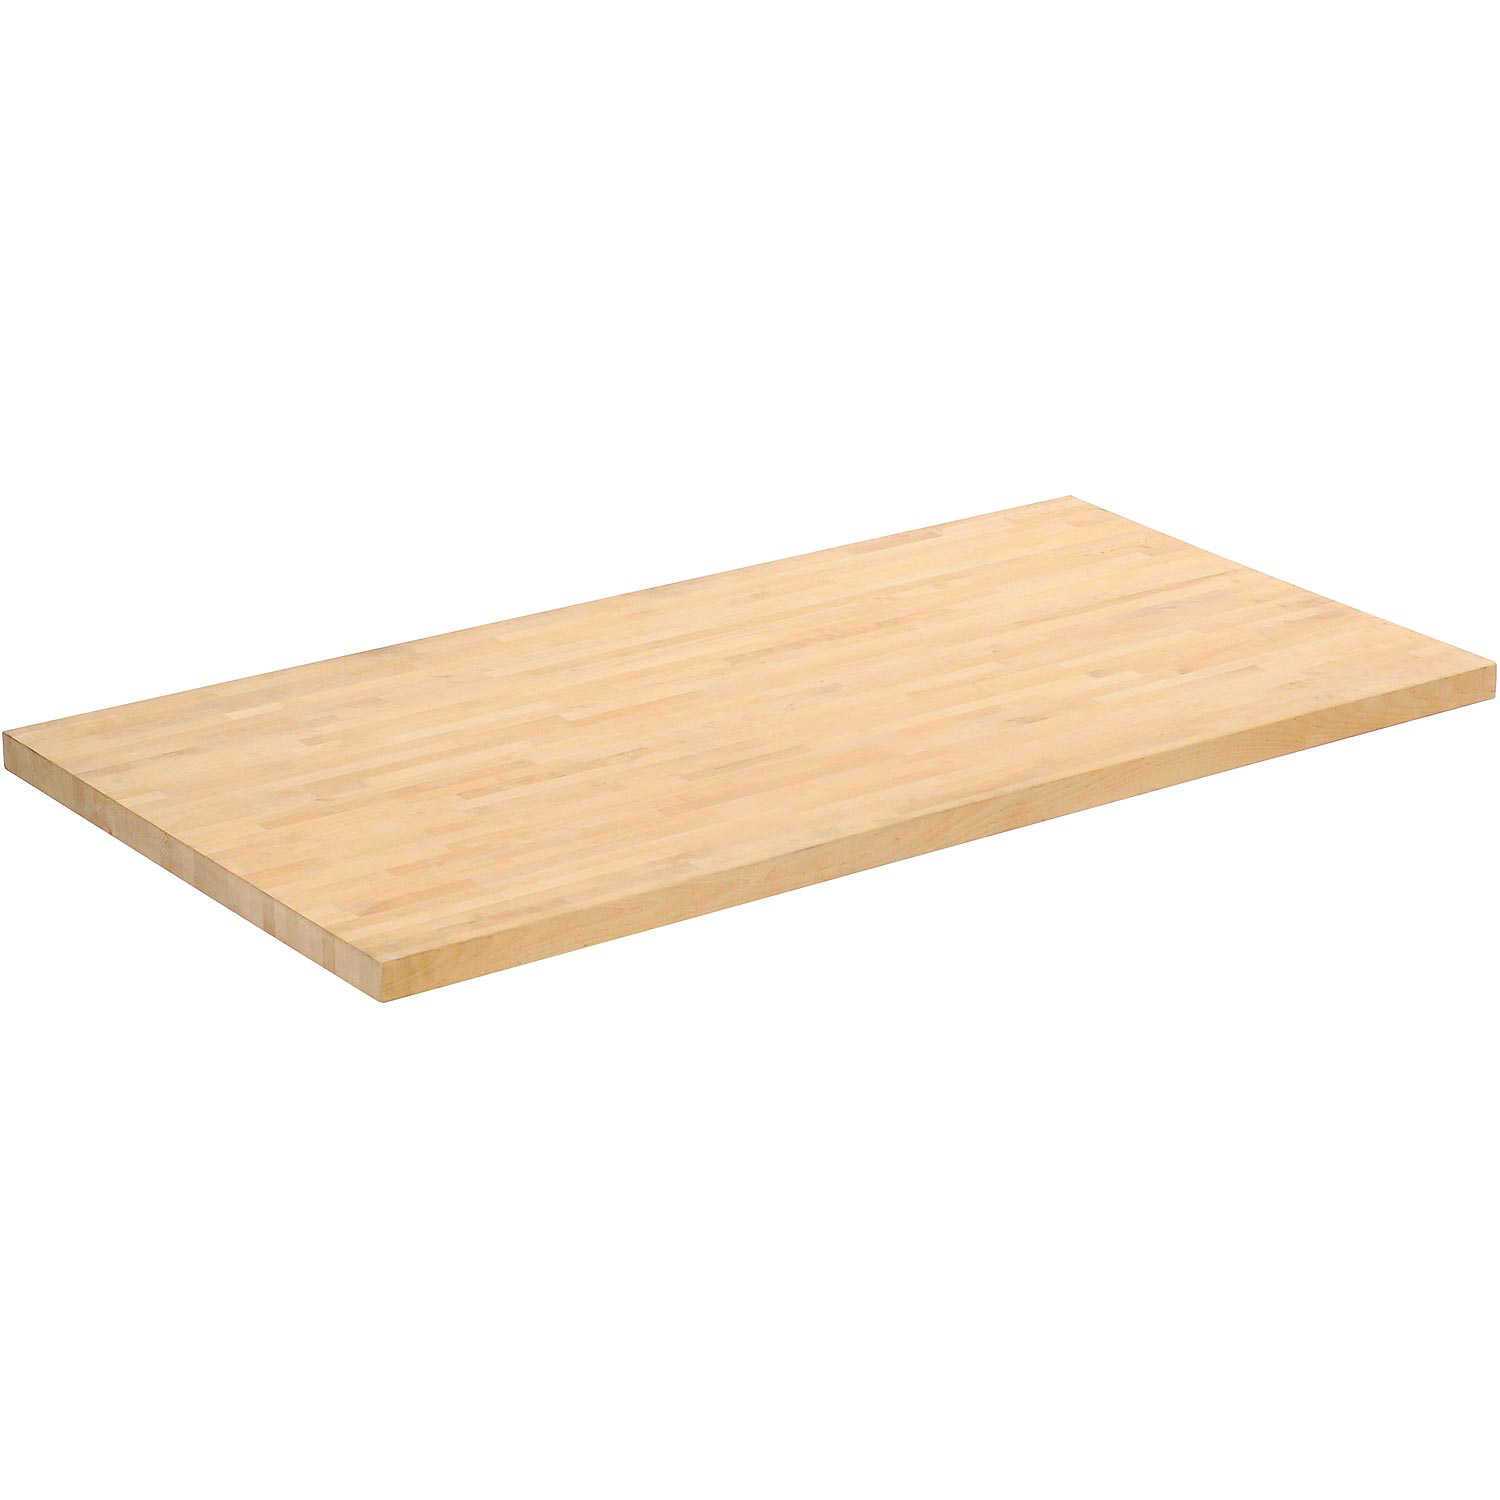 Workbench Top - Birch Butcher Block Square Edge, 48'W x 36'D x 1-3/4' Thick, Lot of 1